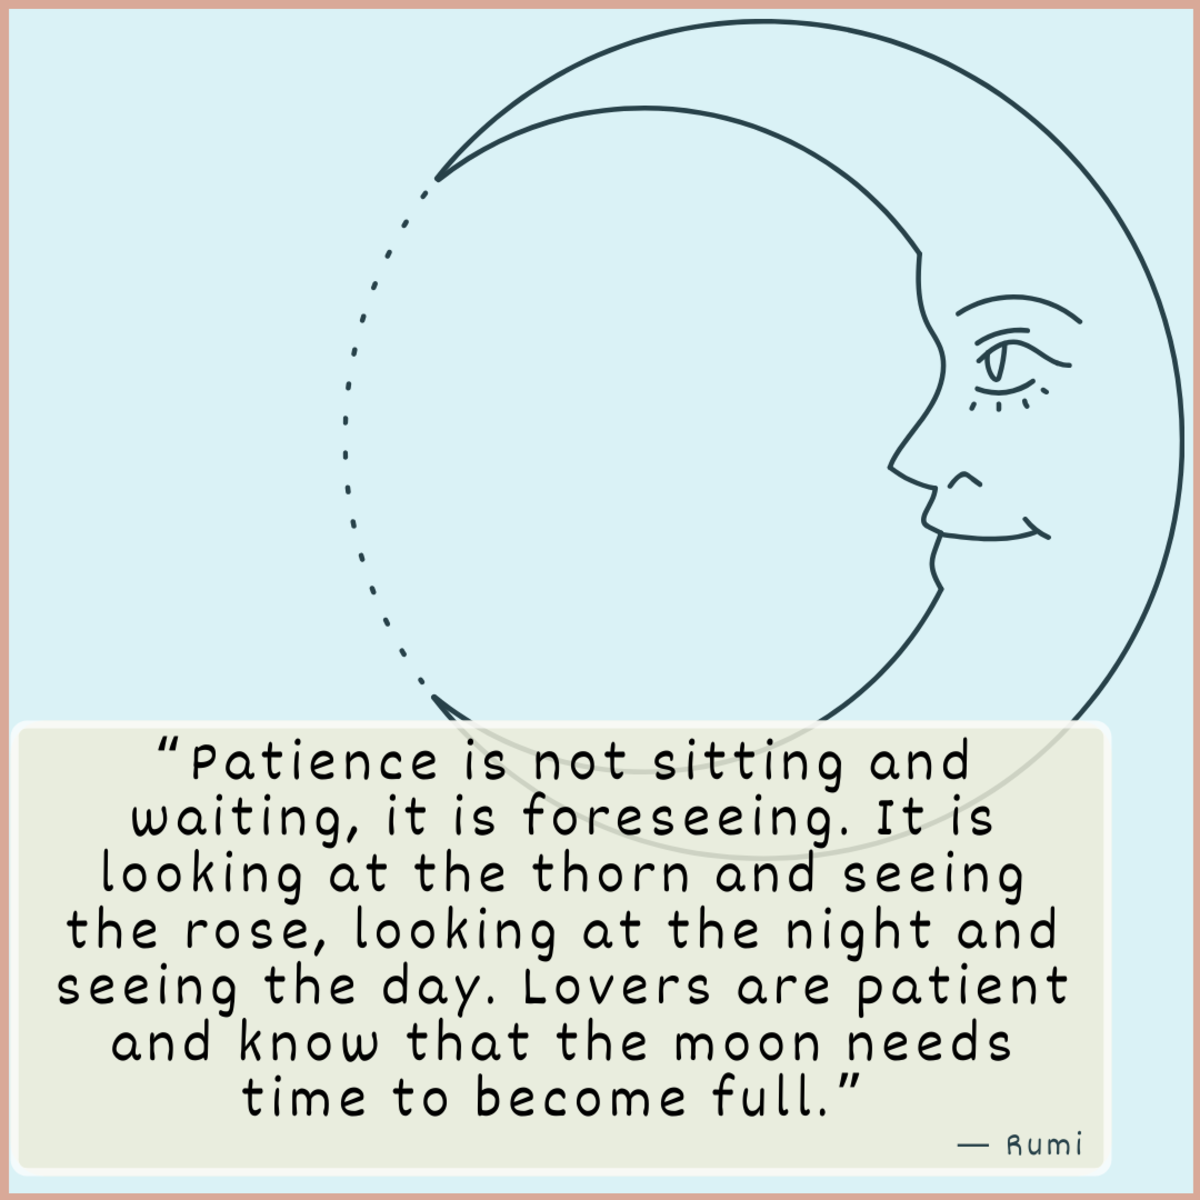 Patience is key in any relationship.